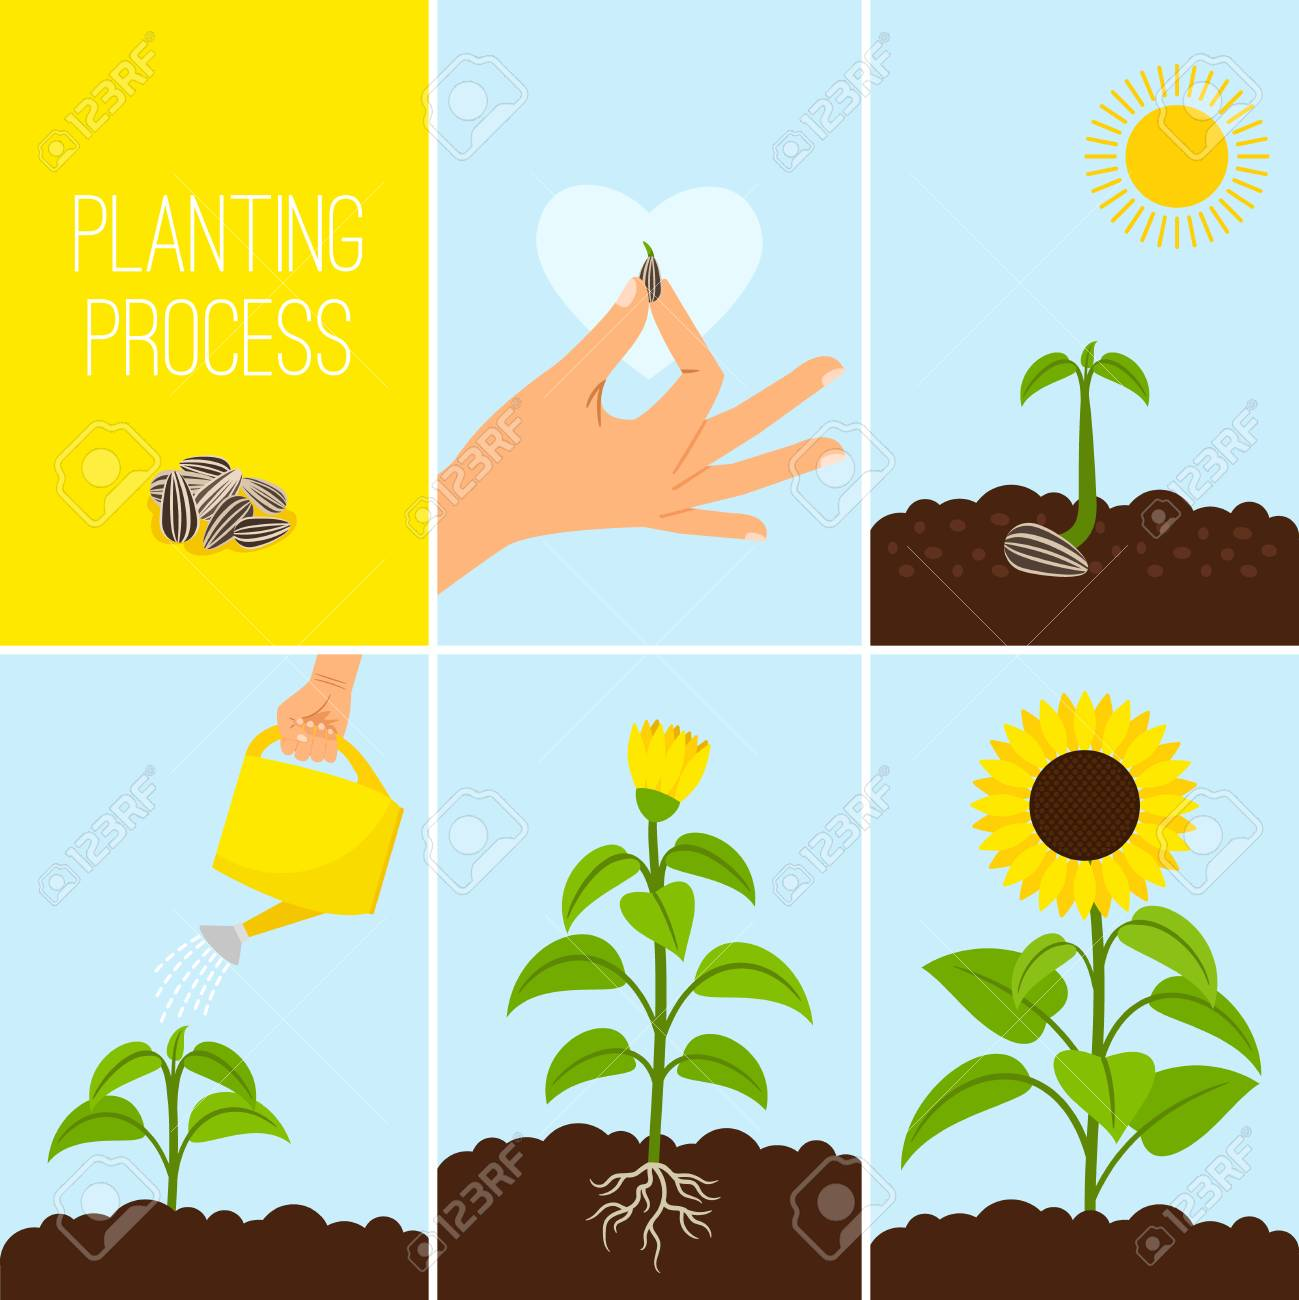 Flower planting process vector illustration. Planting a seed watering. Growing and blooming sunflower - 88063522